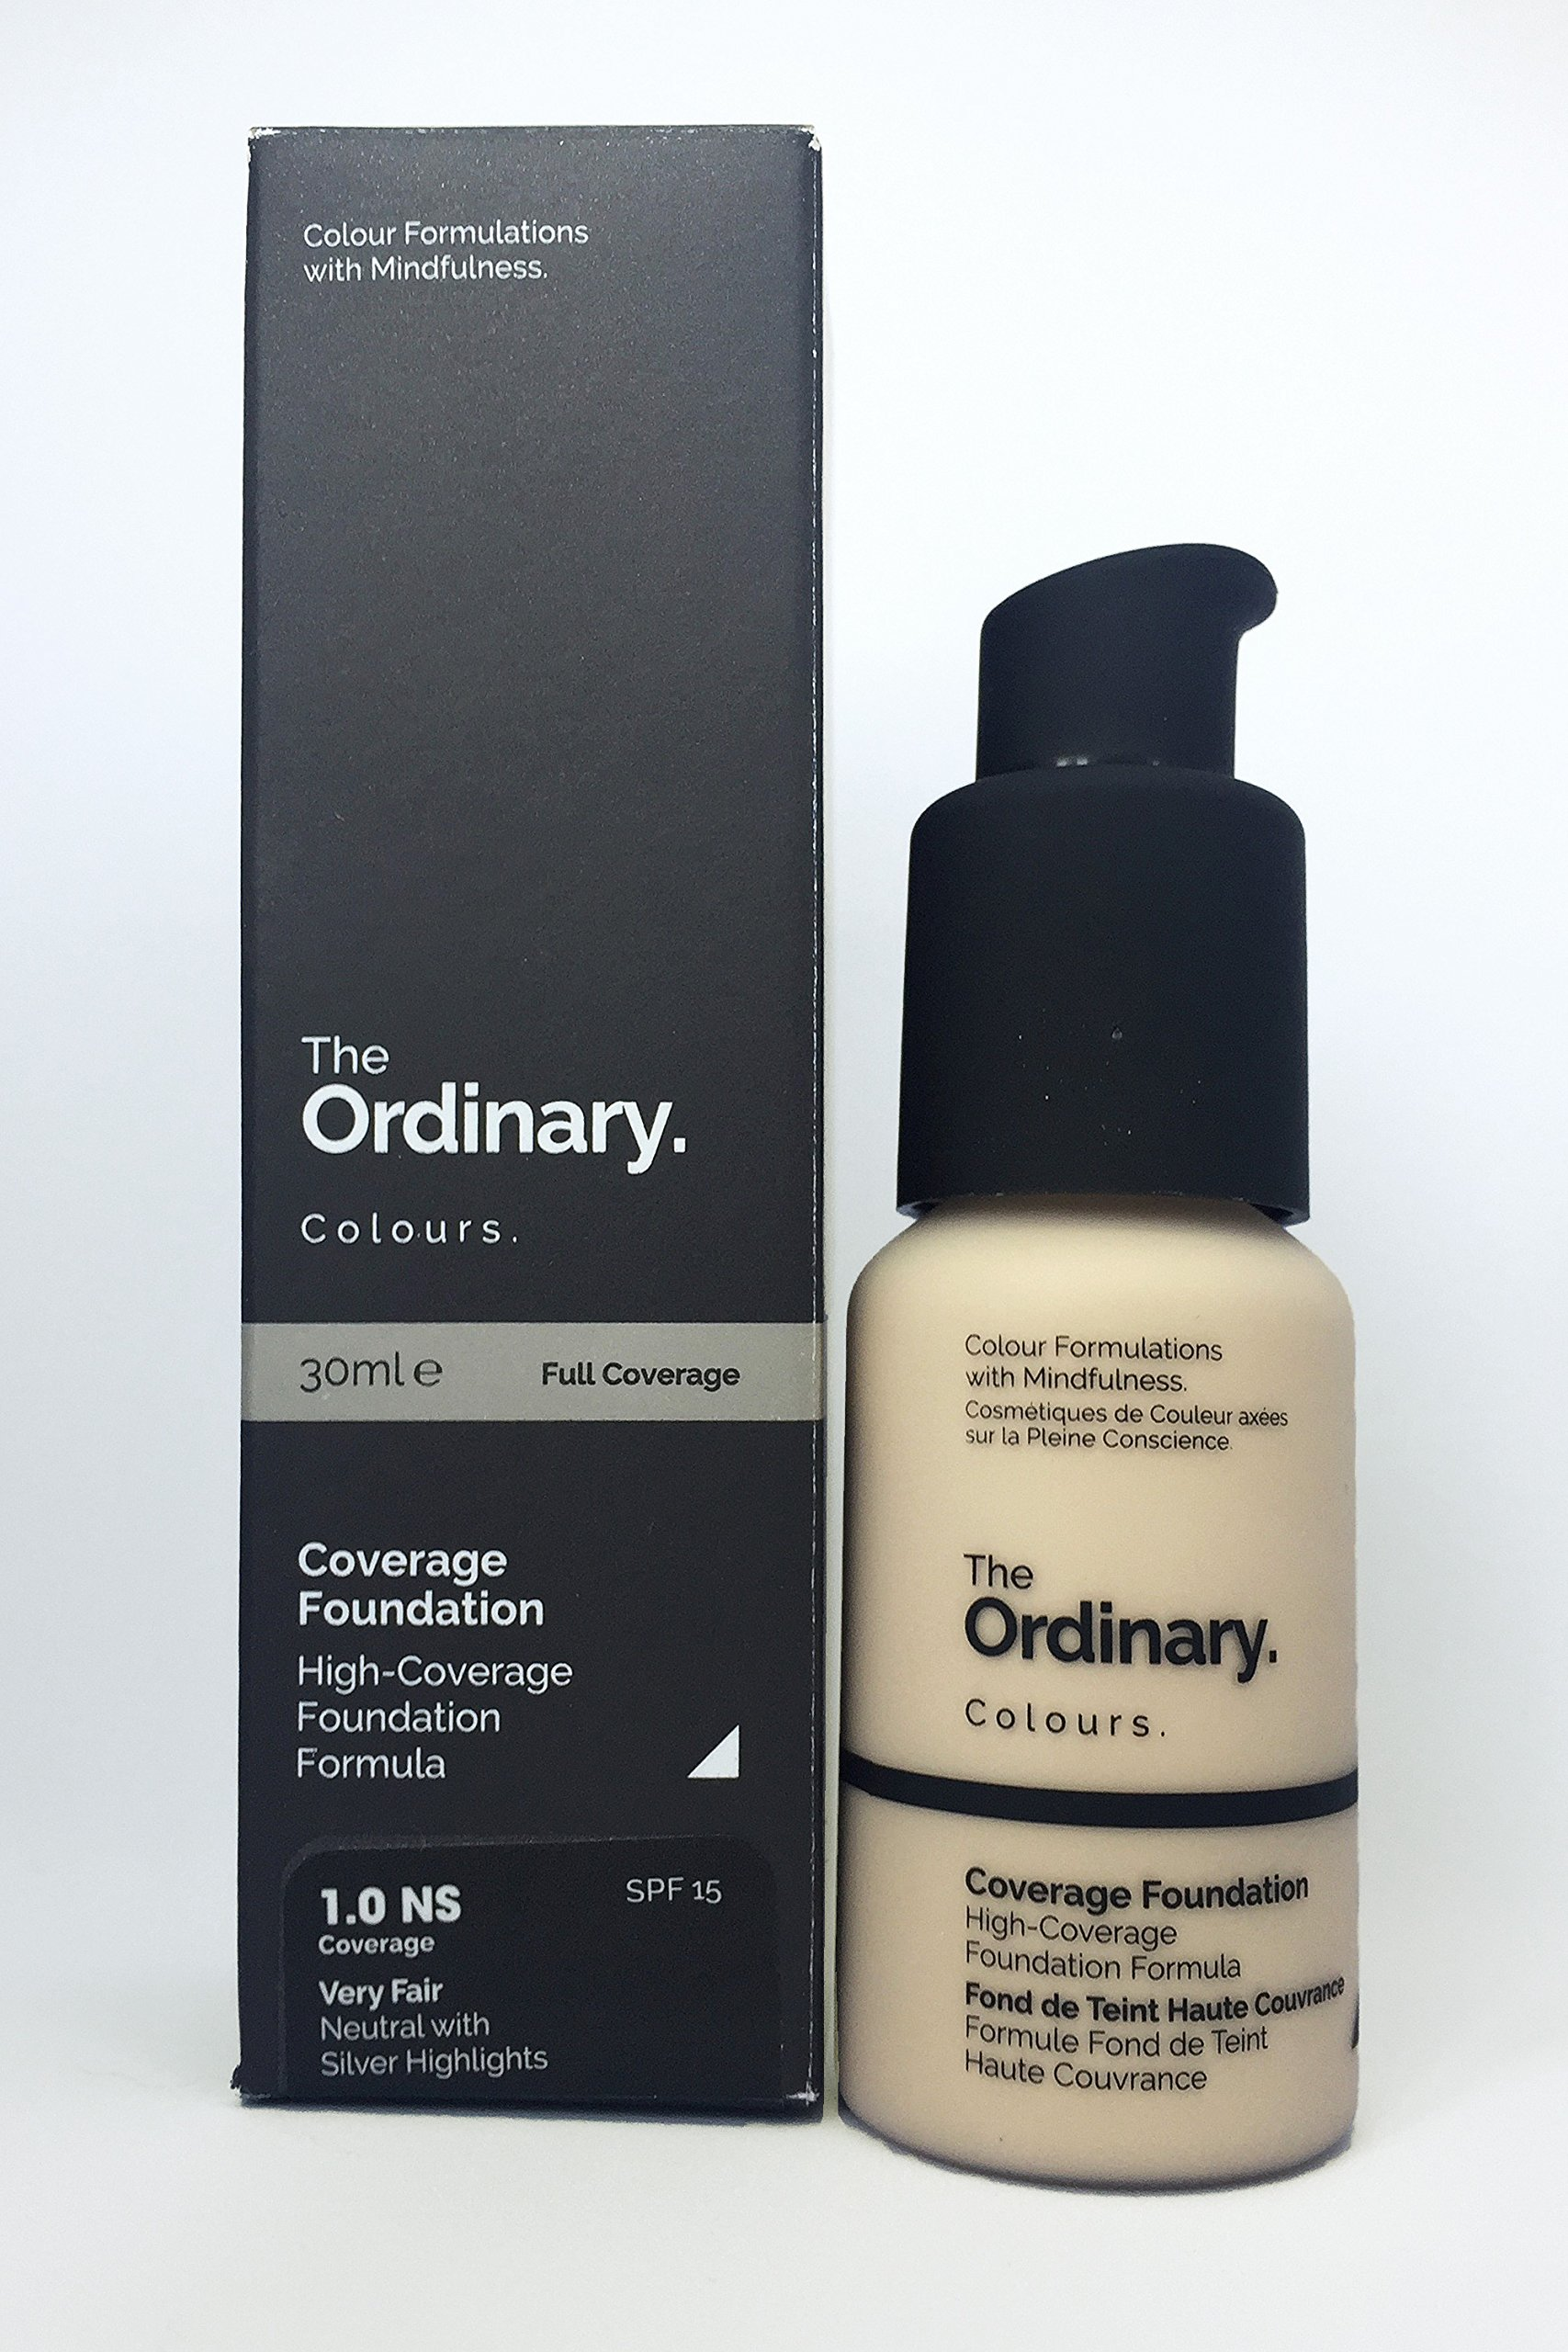 THE ORDINARY Coverage Foundation - SPF 15 30ml - 25,000 wait list - Full coverage foundation. (1.0 NS)